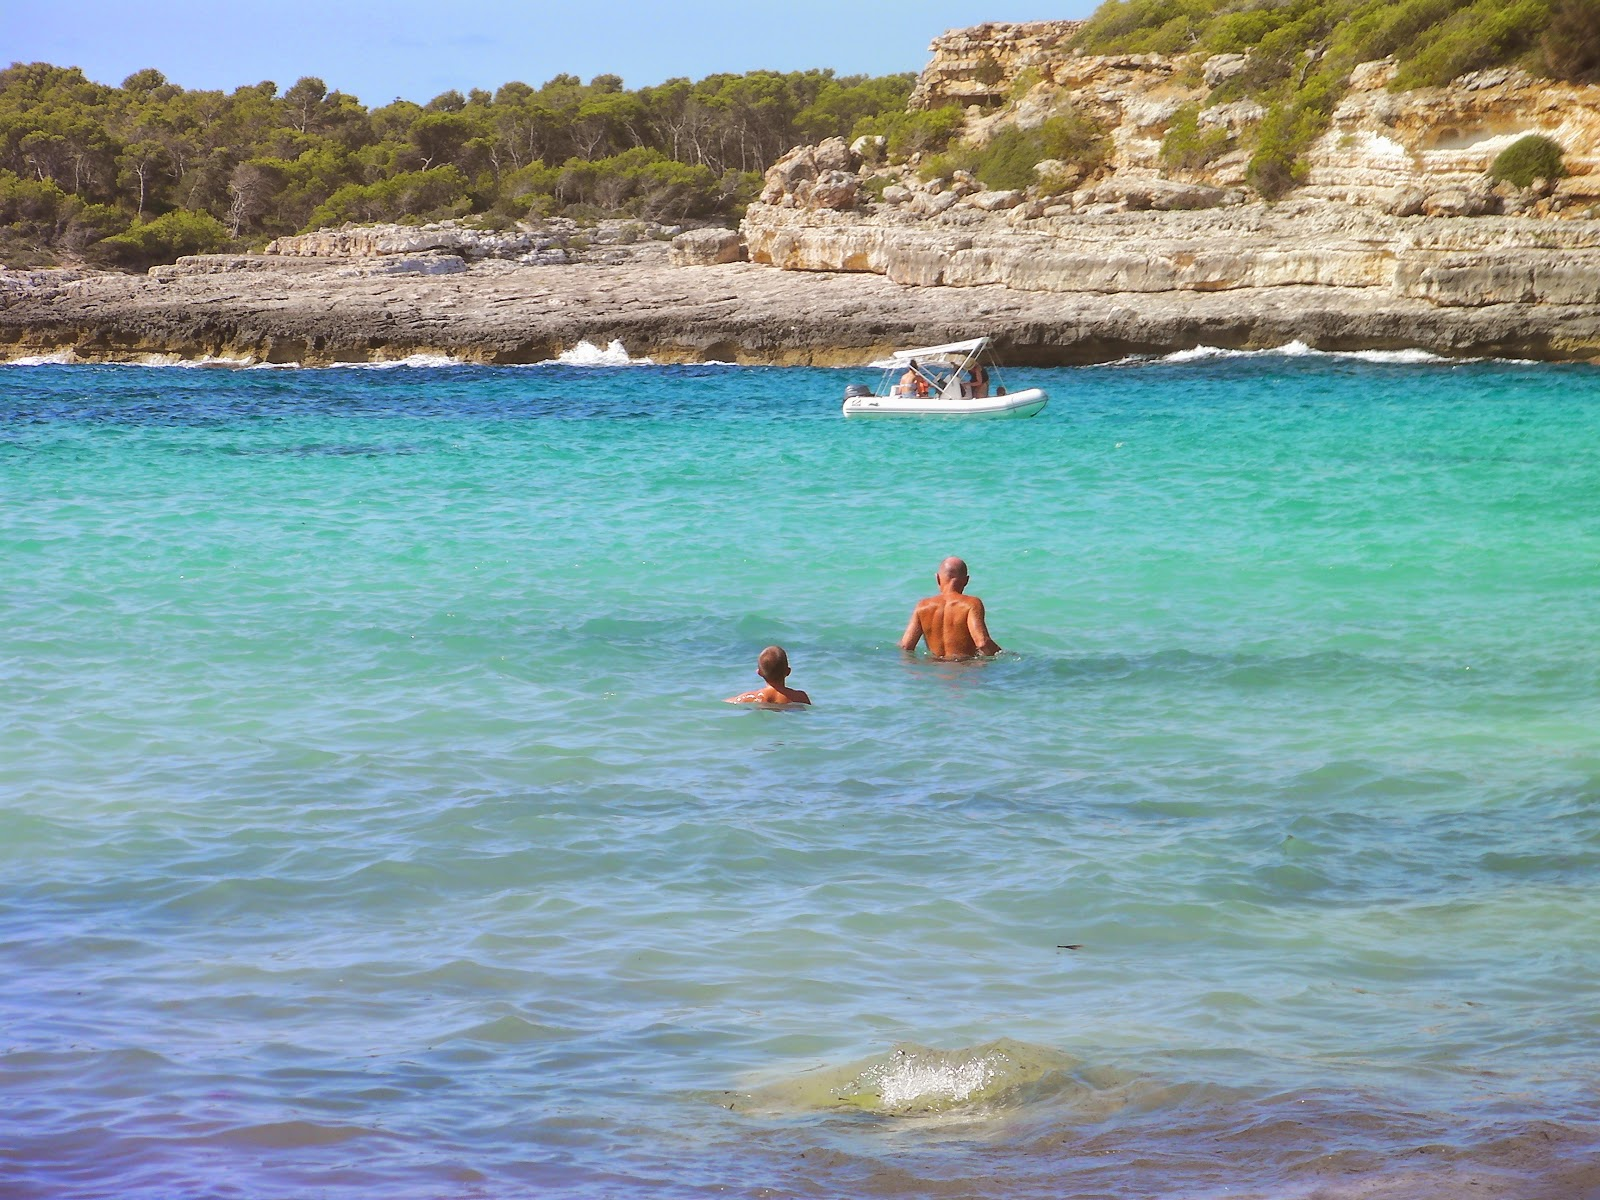 father and son in mediterranean sea majorca cala mondrago